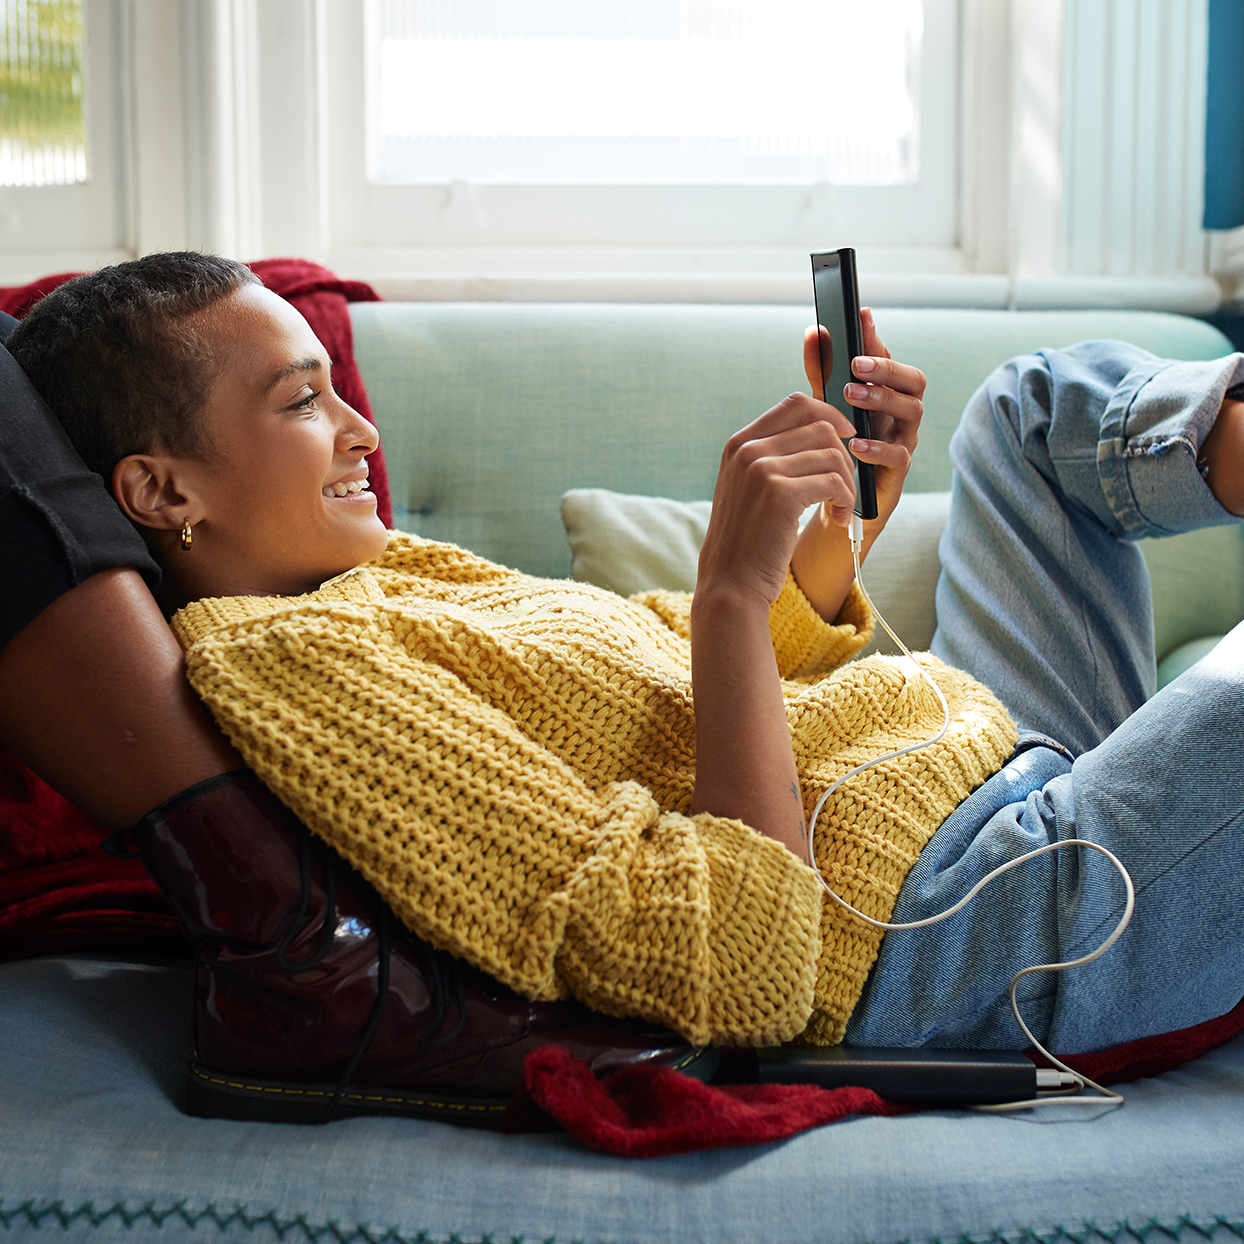 Woman messaging on phone while leaning on friend